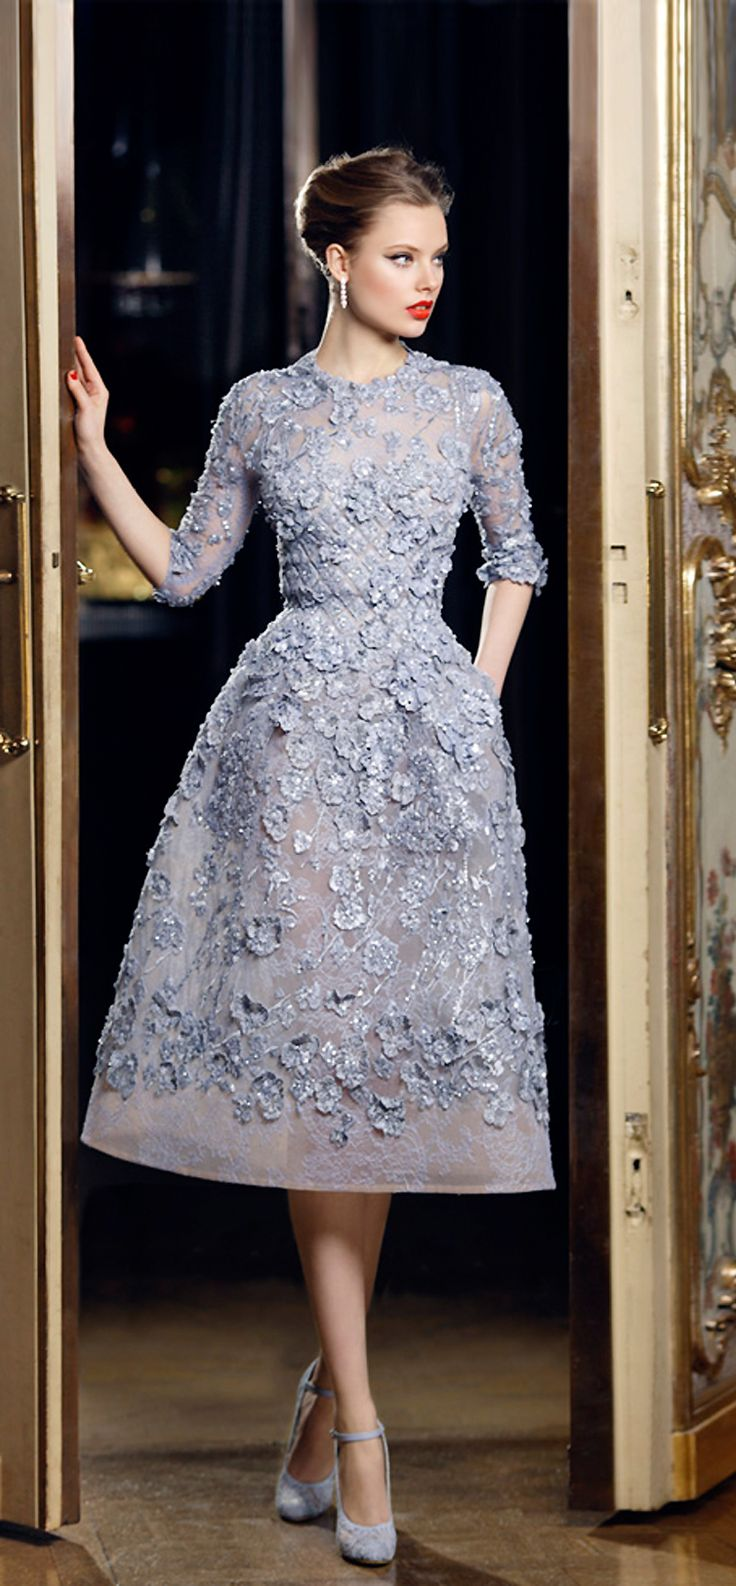 Elie Saab - Spring 2013 Couture, #Modest doesn't mean frumpy. www.ColleenHammond.com periwinkle blue floral knee length dress, belt, 3/4 length sleeves